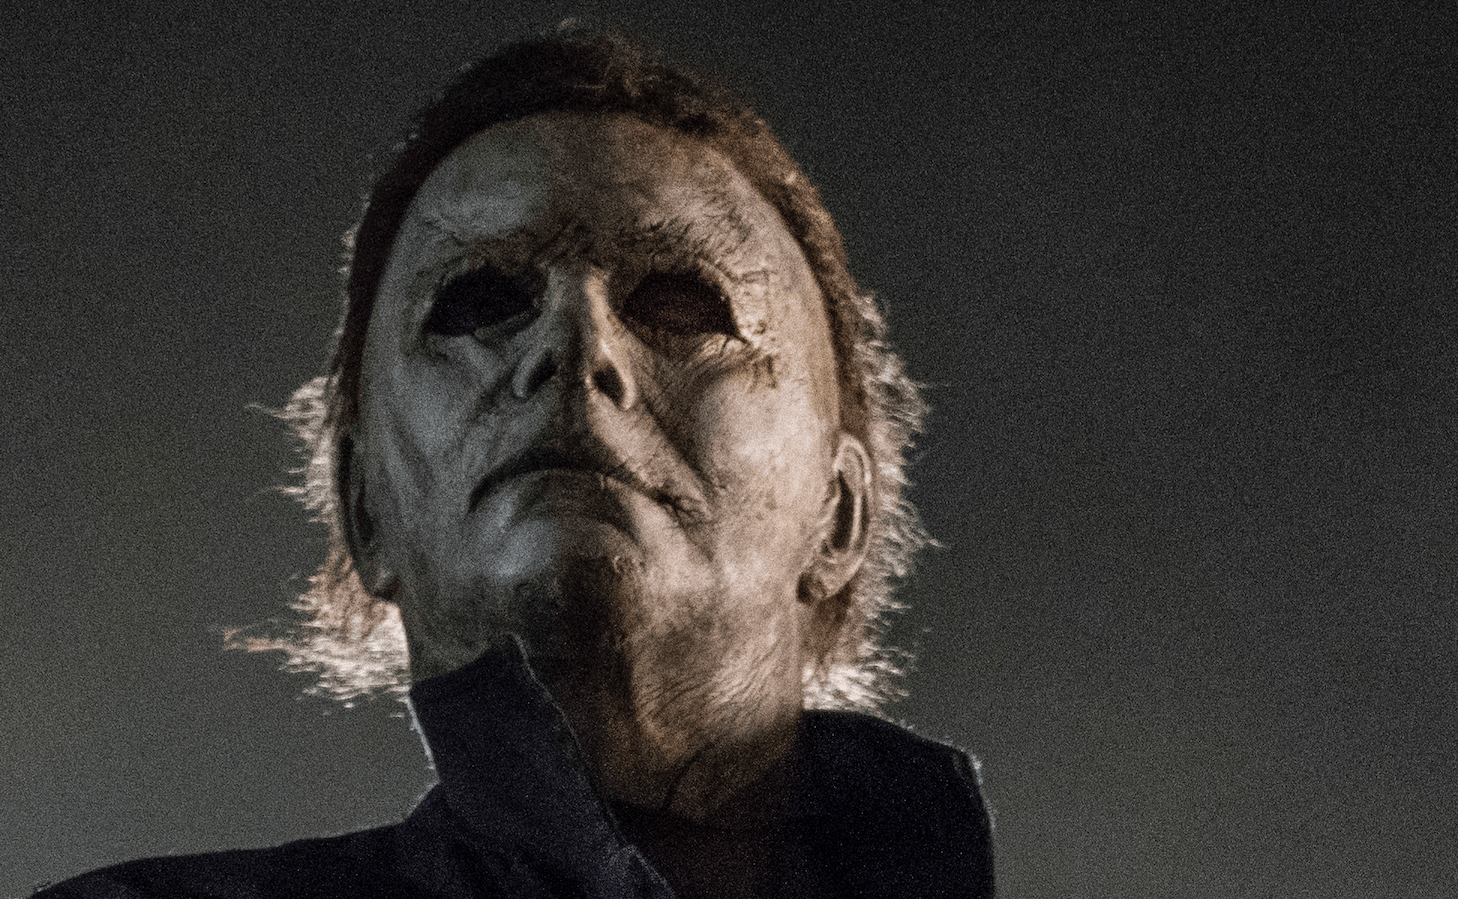 Gallery These Mega Sized Hd Images Of Michael Myers Scott